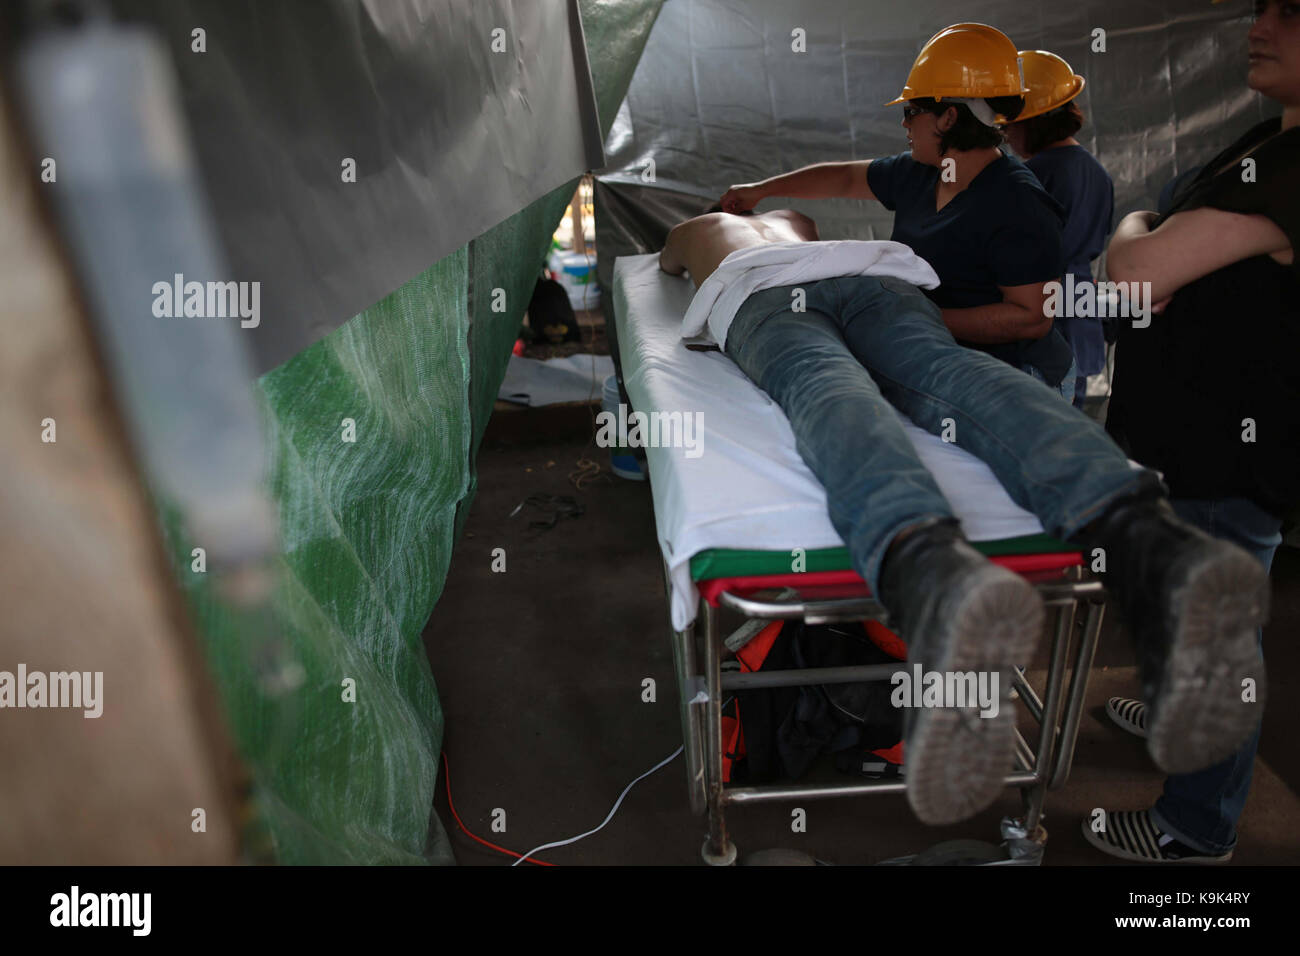 Volunteers offer massages to brigades during the rescue works in Mexico City, Mexico, 23 September 2017. A 6.4 Richter - Stock Image